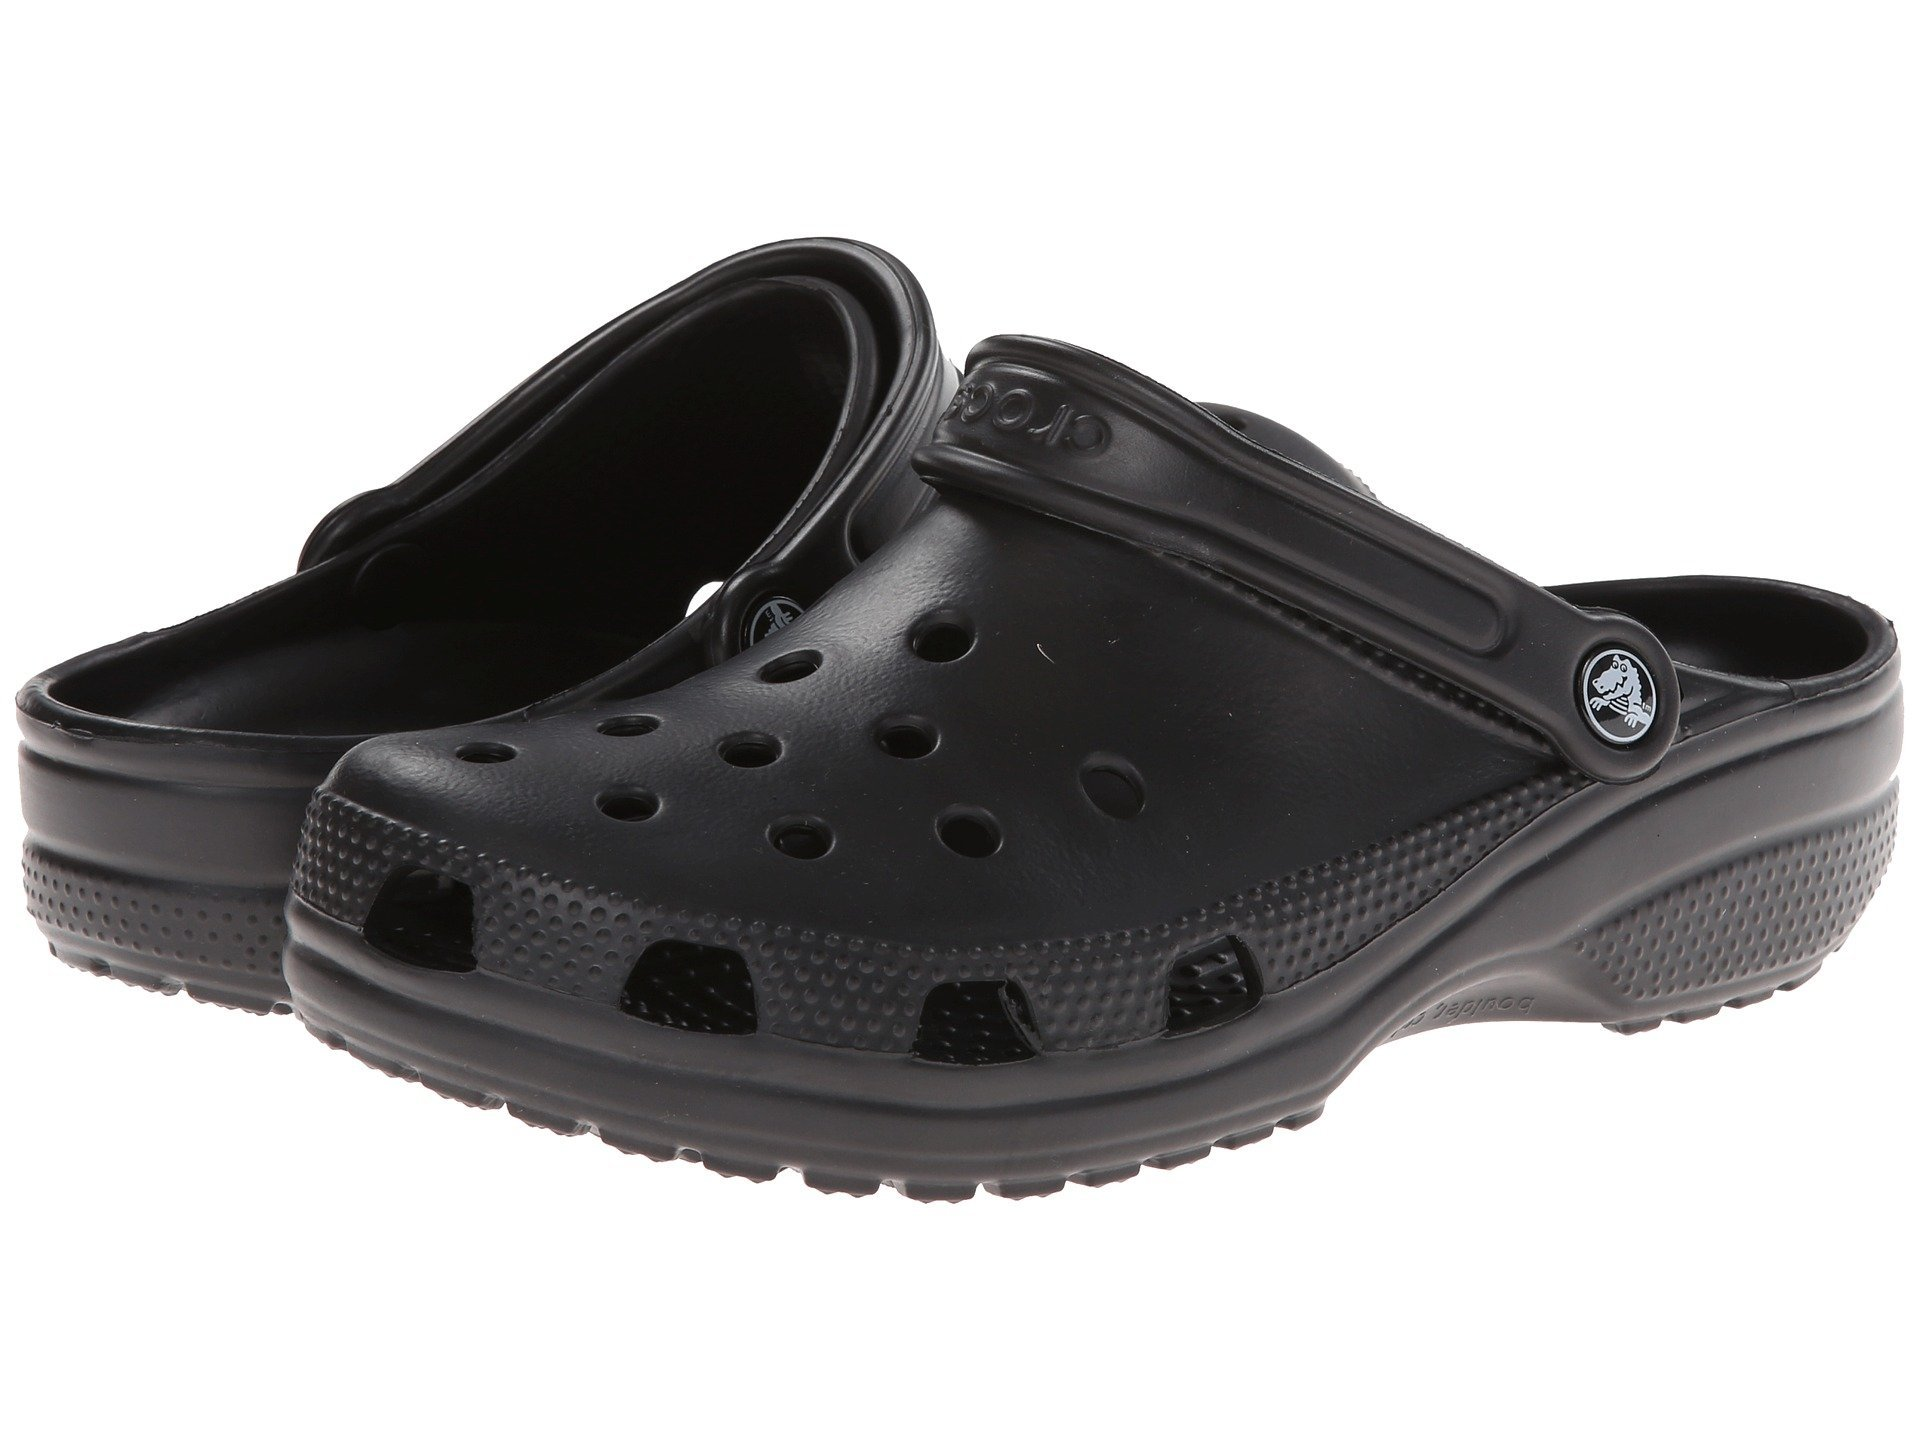 Crocs Unisex Classic Clog, Black, 8 US Men/10 US Women